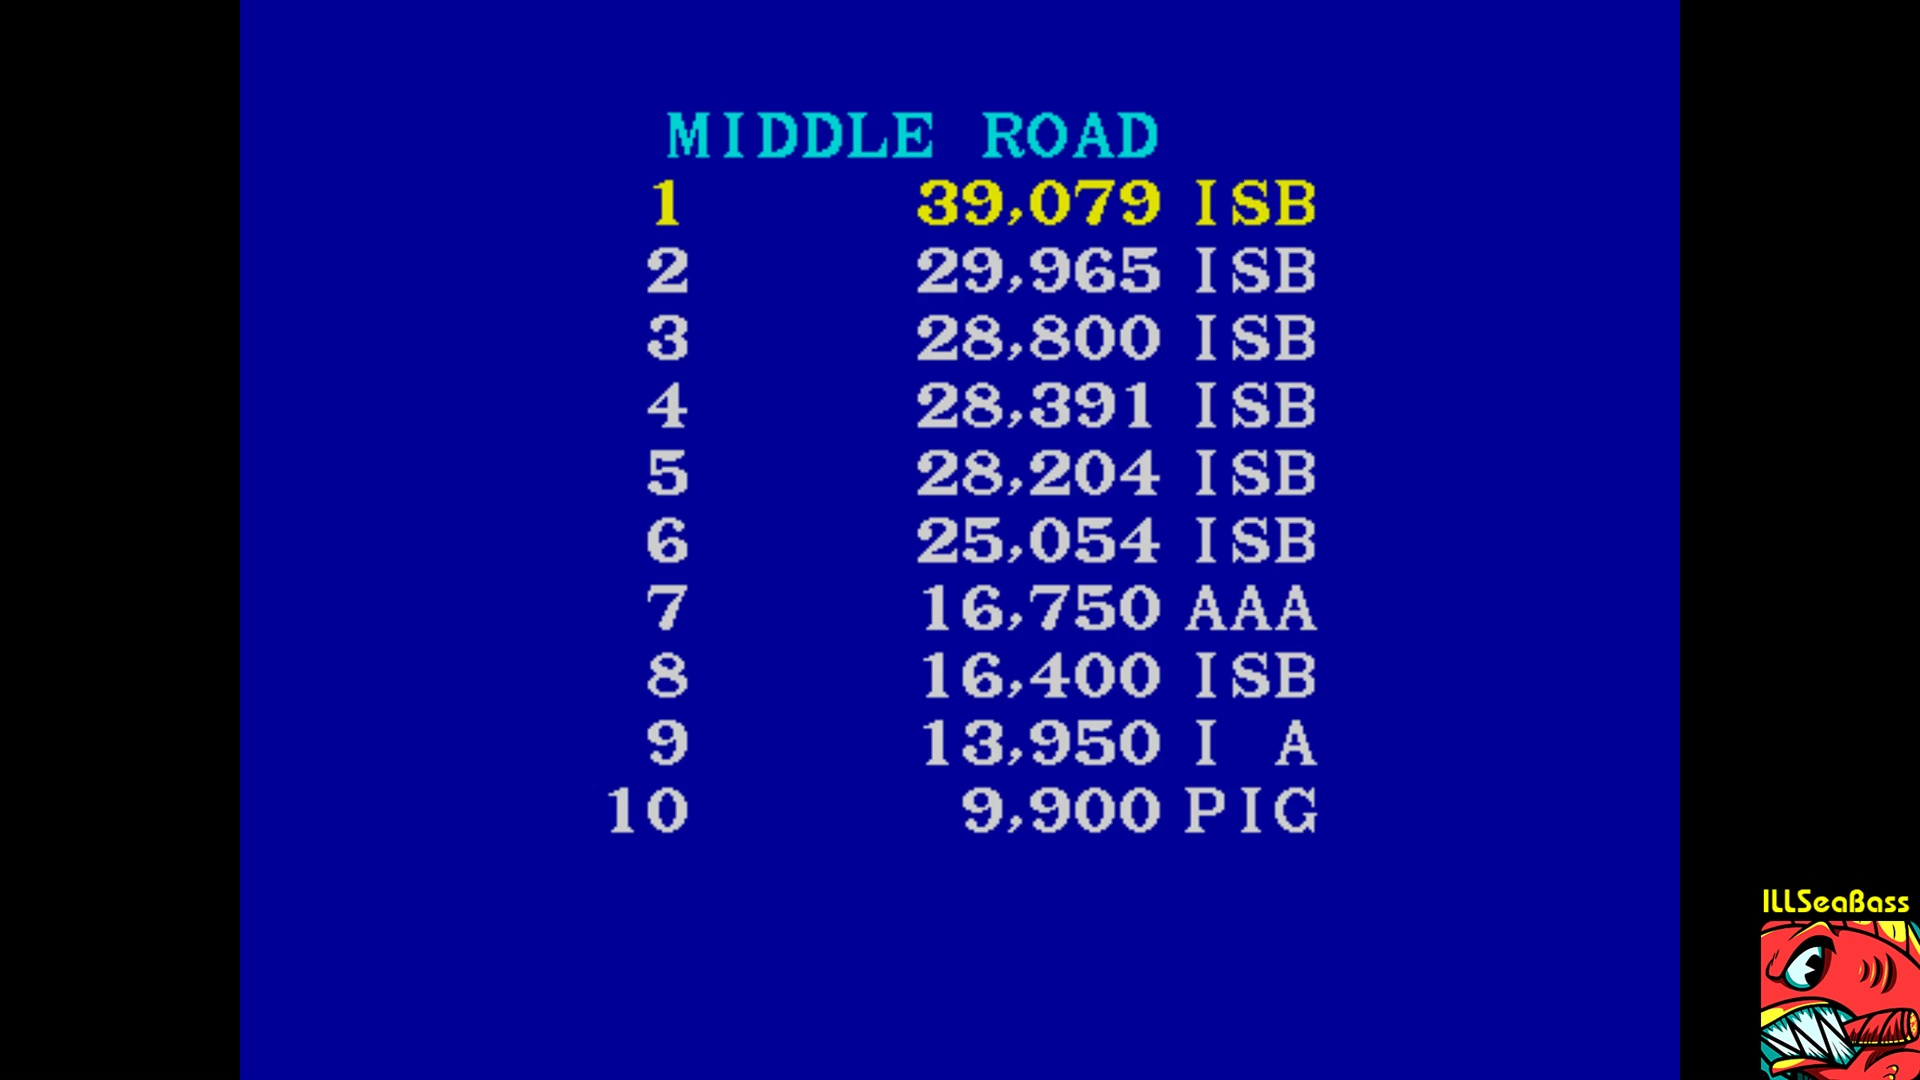 ILLSeaBass: Paperboy [Middle Road] (Arcade Emulated / M.A.M.E.) 39,079 points on 2017-11-05 21:50:22